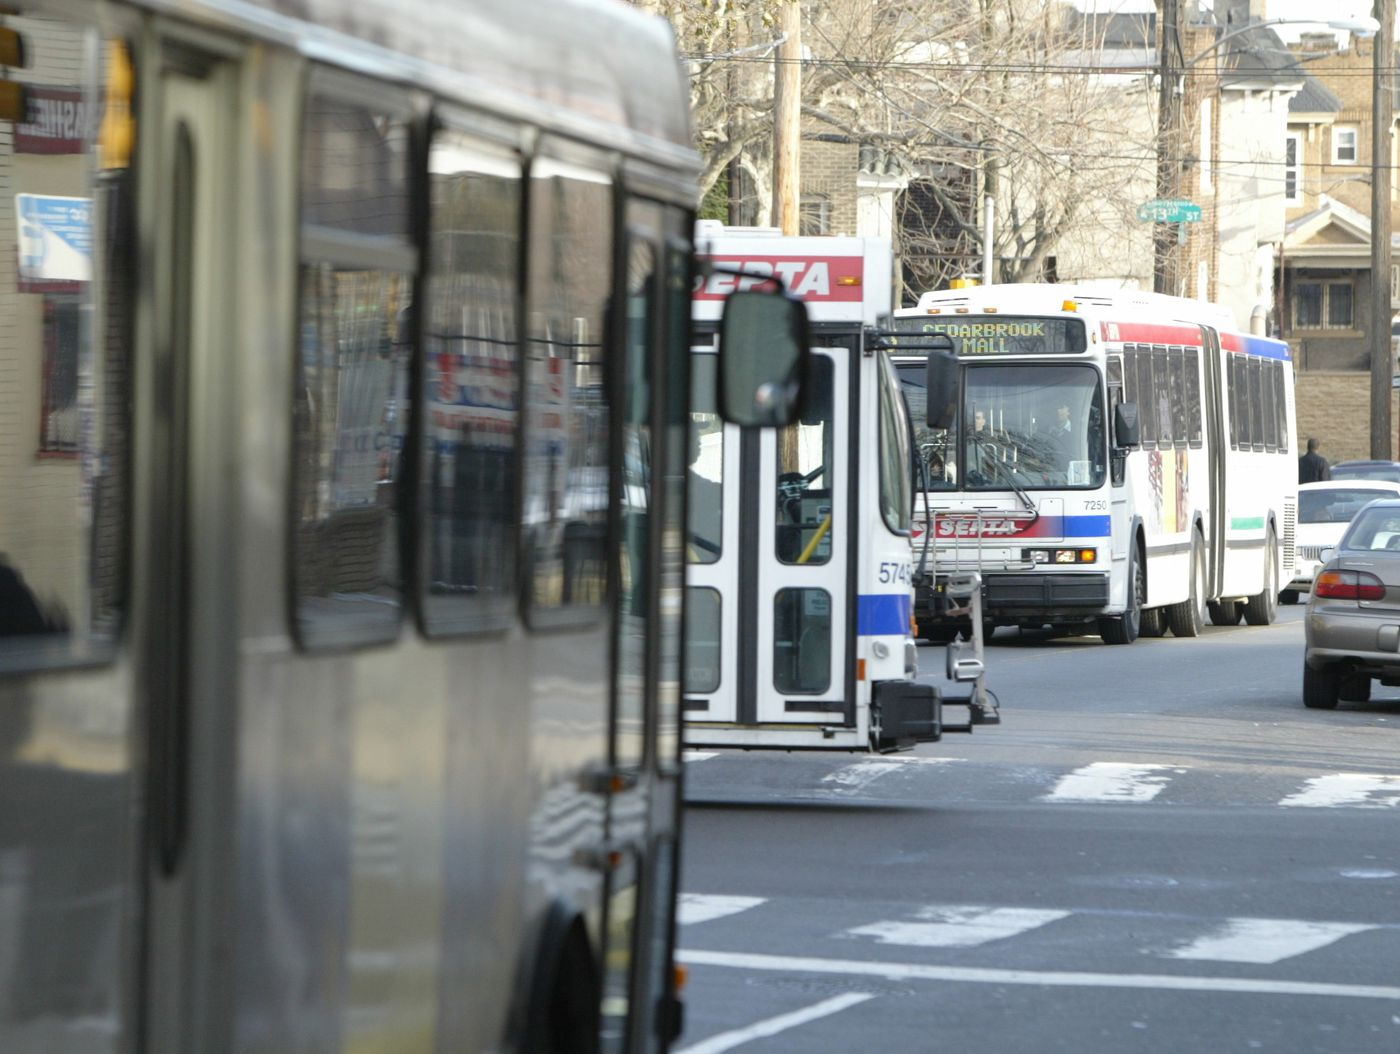 Extend the Broad Street Line north, make parking permits